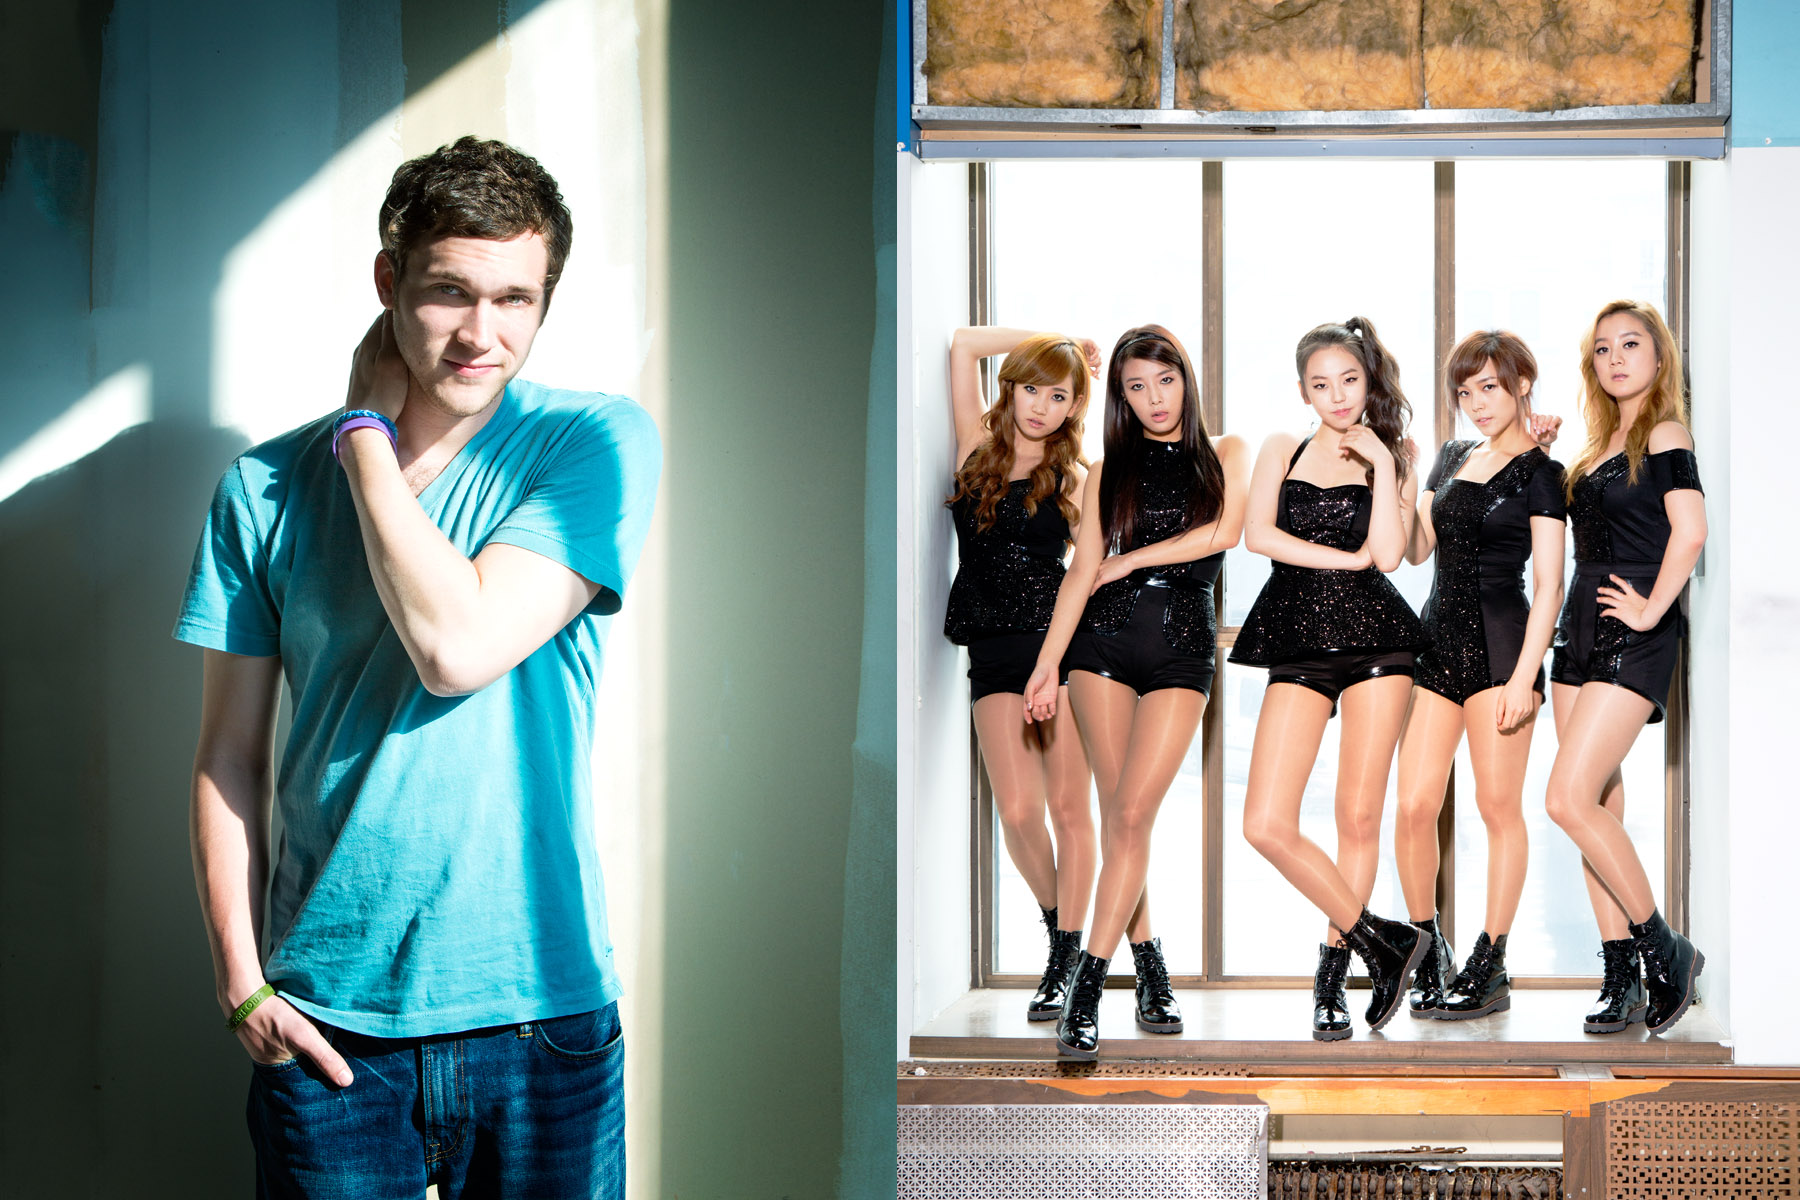 Phillip Phillips/Wonder Girls